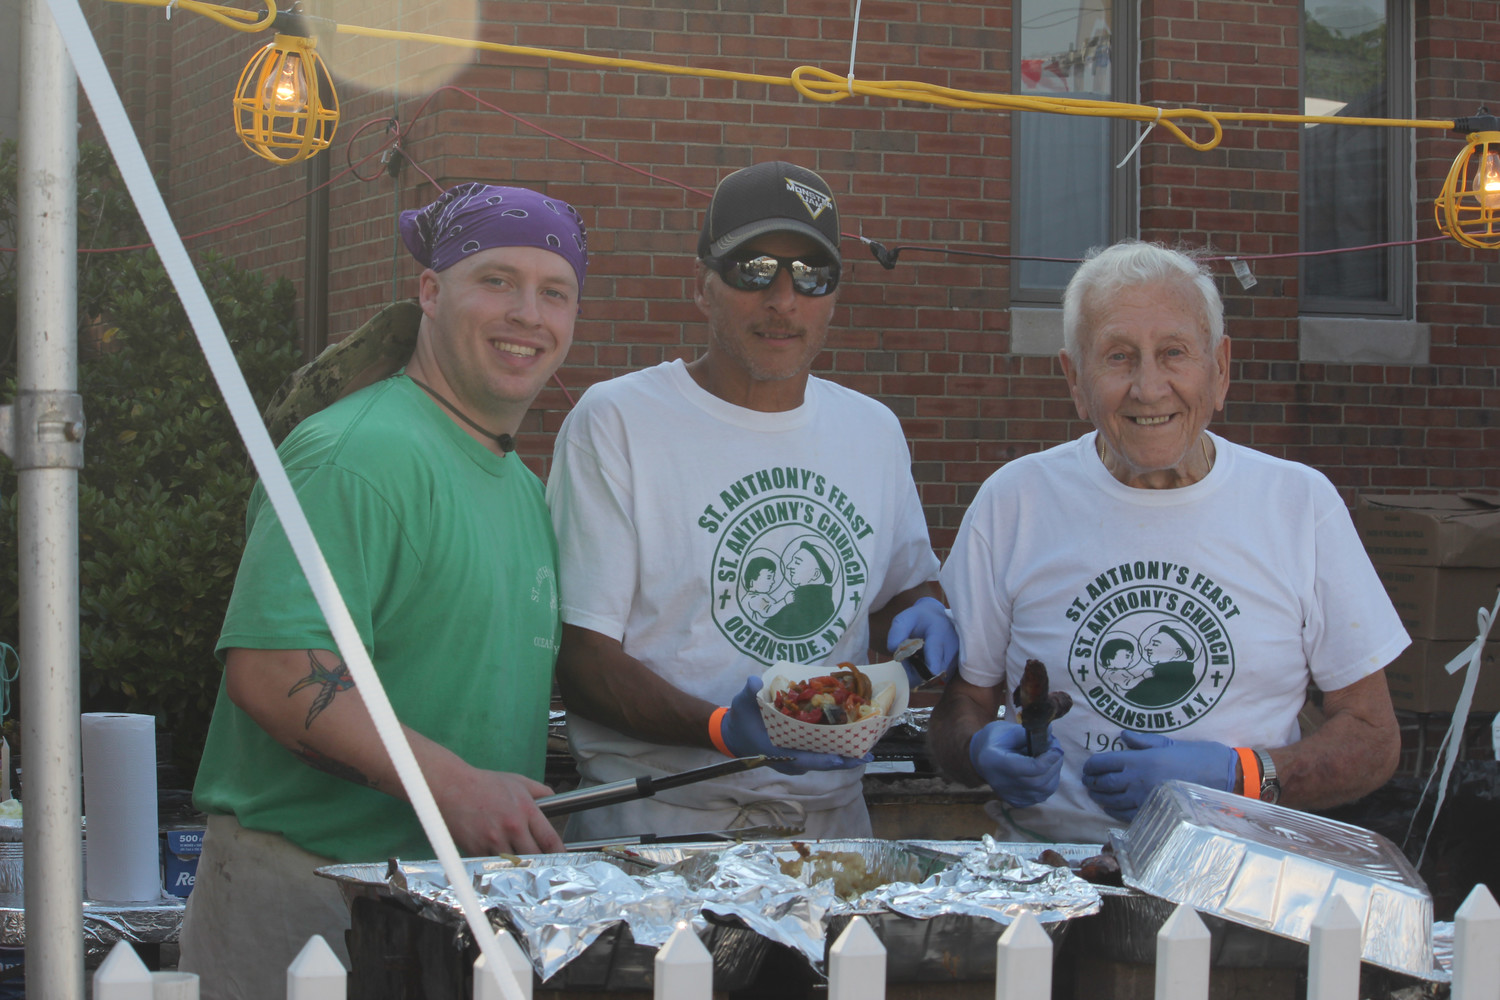 Volunteer Tony Ditizio, far right, started it all 49 years ago when St. Anthony's Church held its first feast. He was joined by his godson, Dominic Albanese and Rich Giambrone.